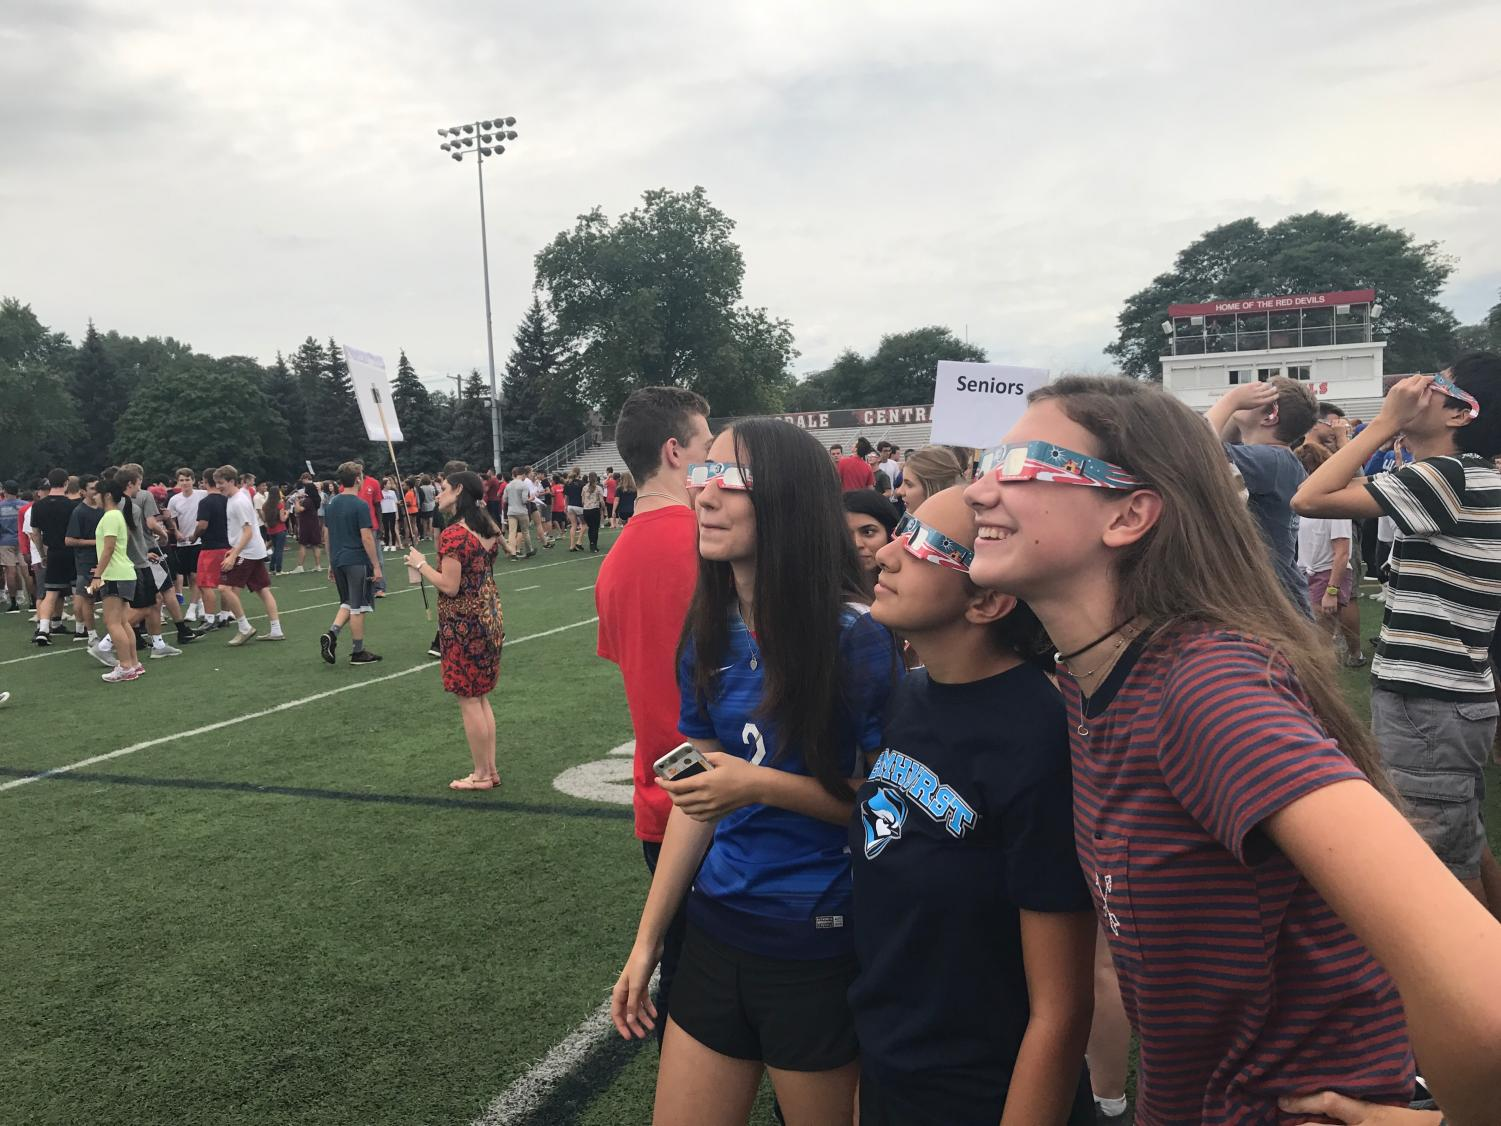 Seniors Elaine Carter, Jacinda Eskander, and Kerri Kenney watch the solar eclipse on the football field.